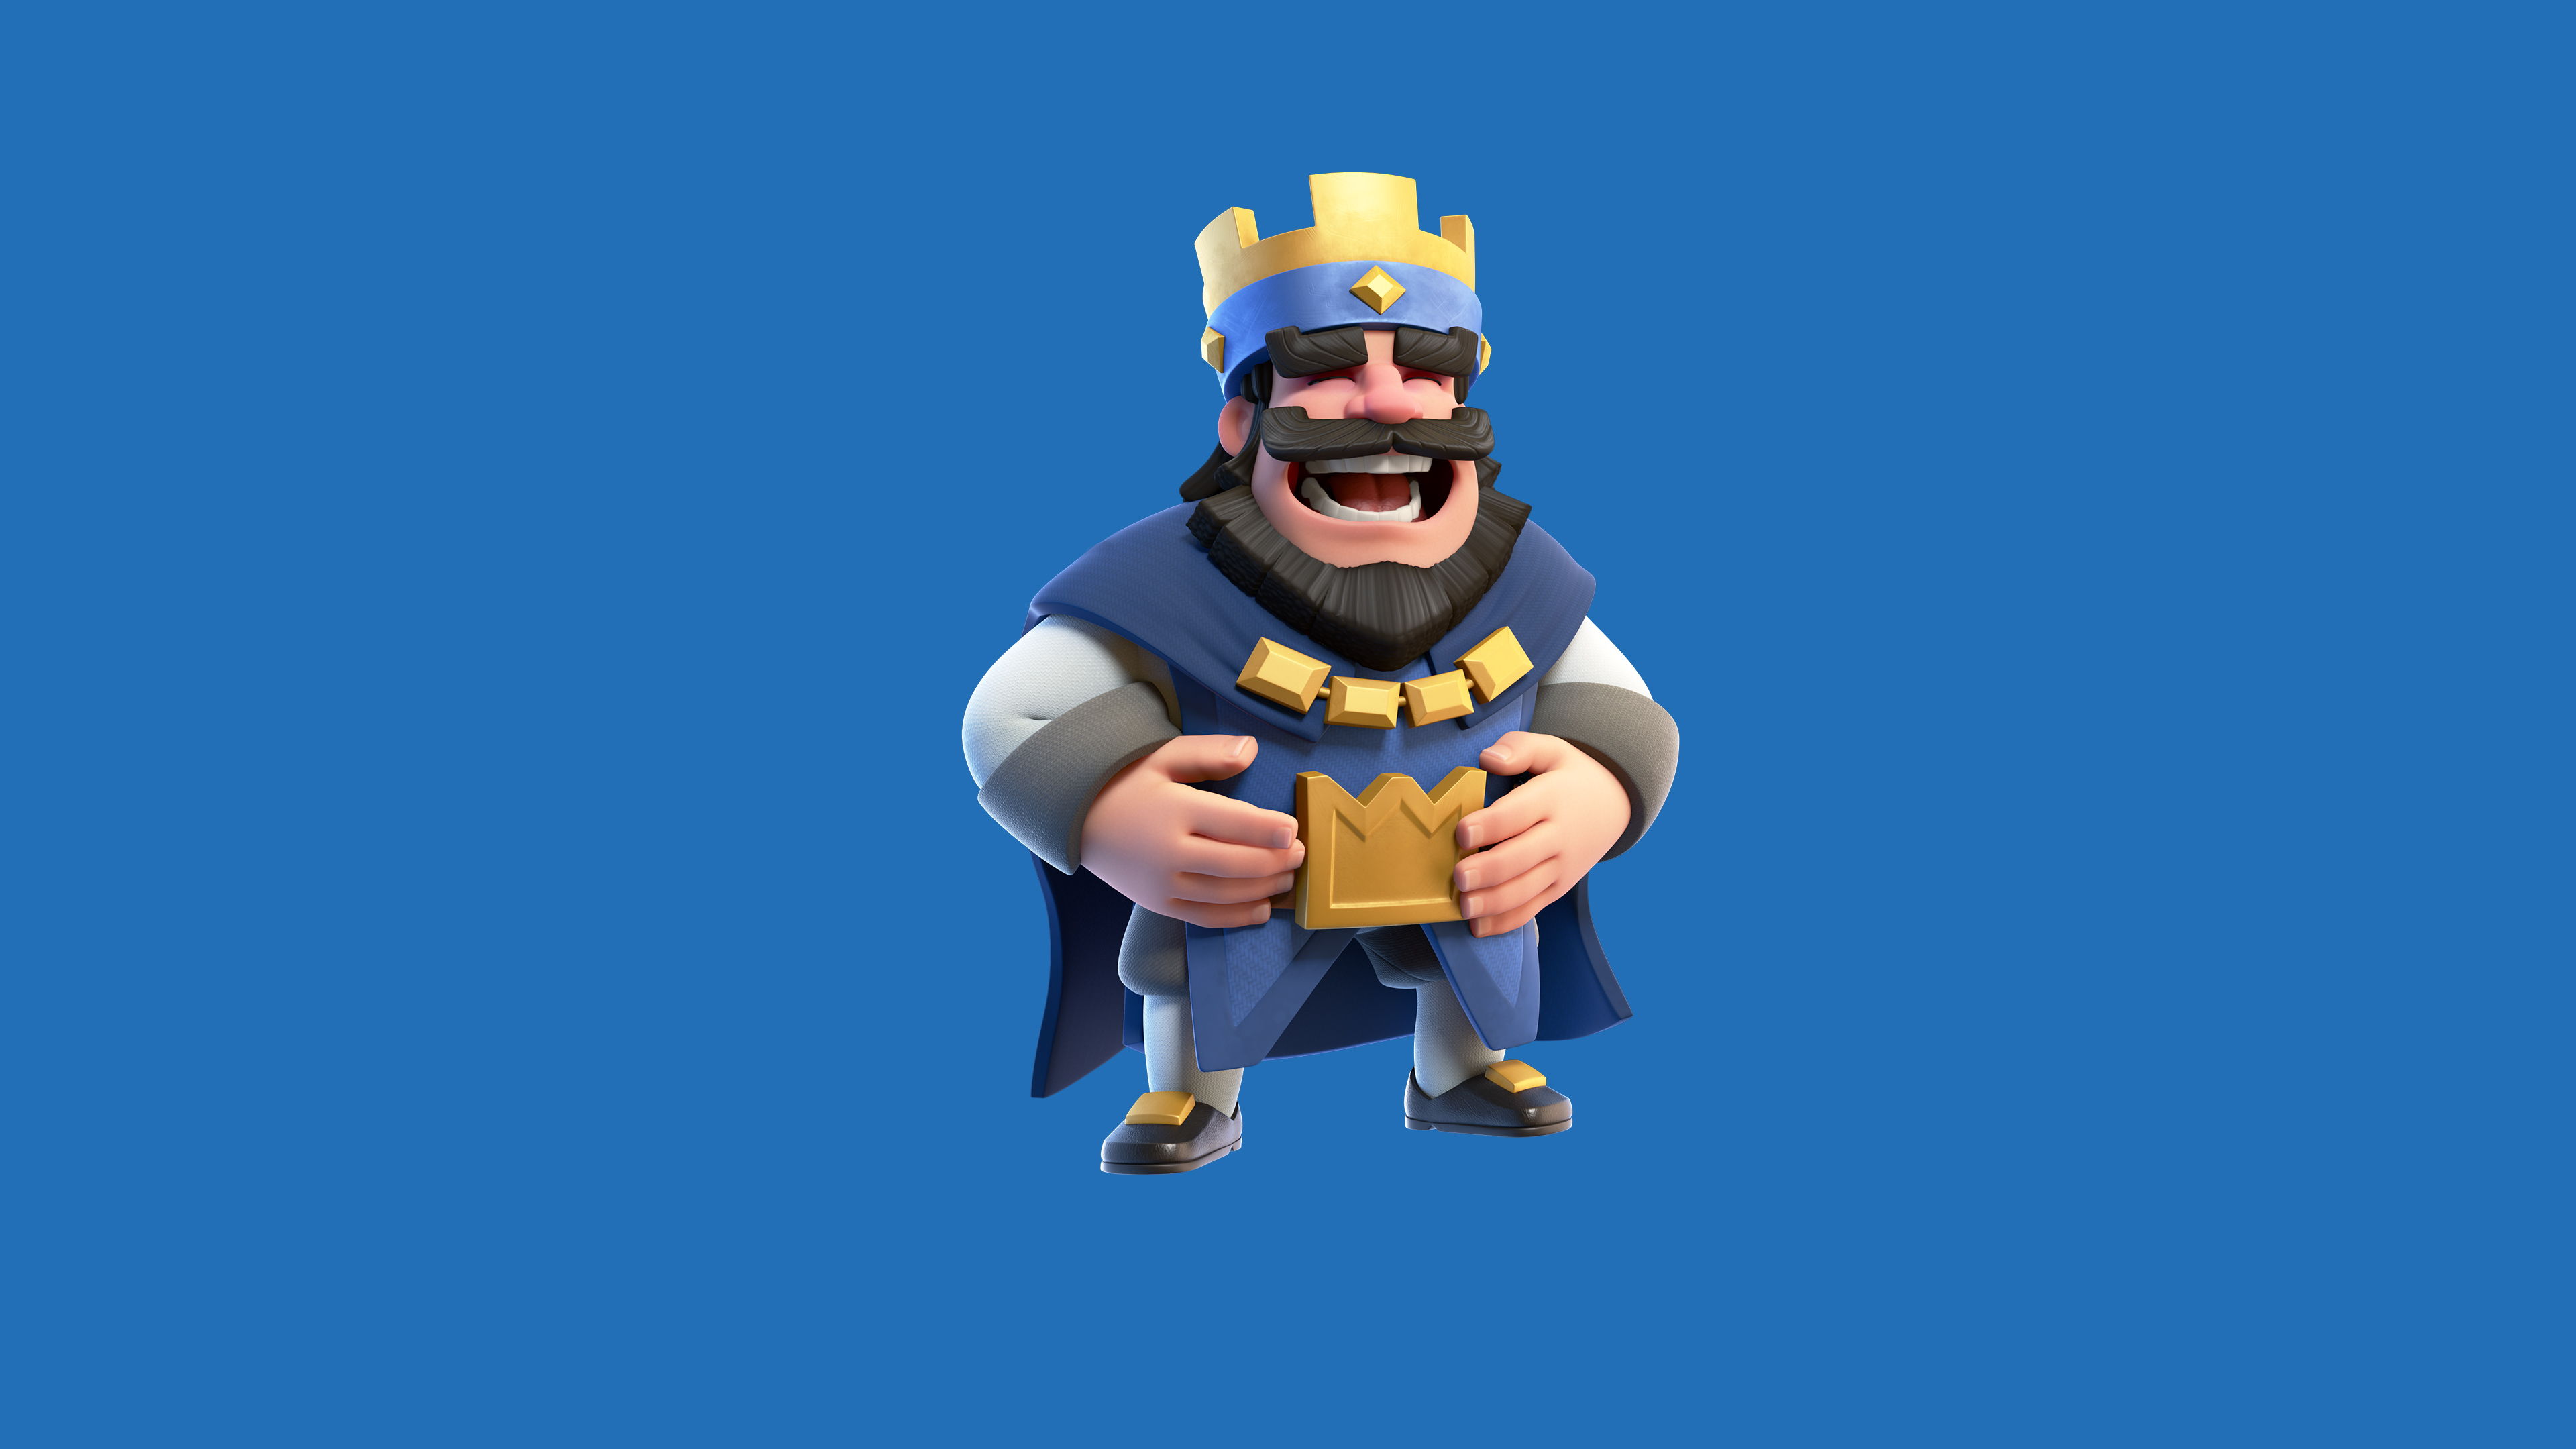 Clash royale blue king hd games 4k wallpapers images backgrounds photos and pictures - Clash royale 2560x1440 ...